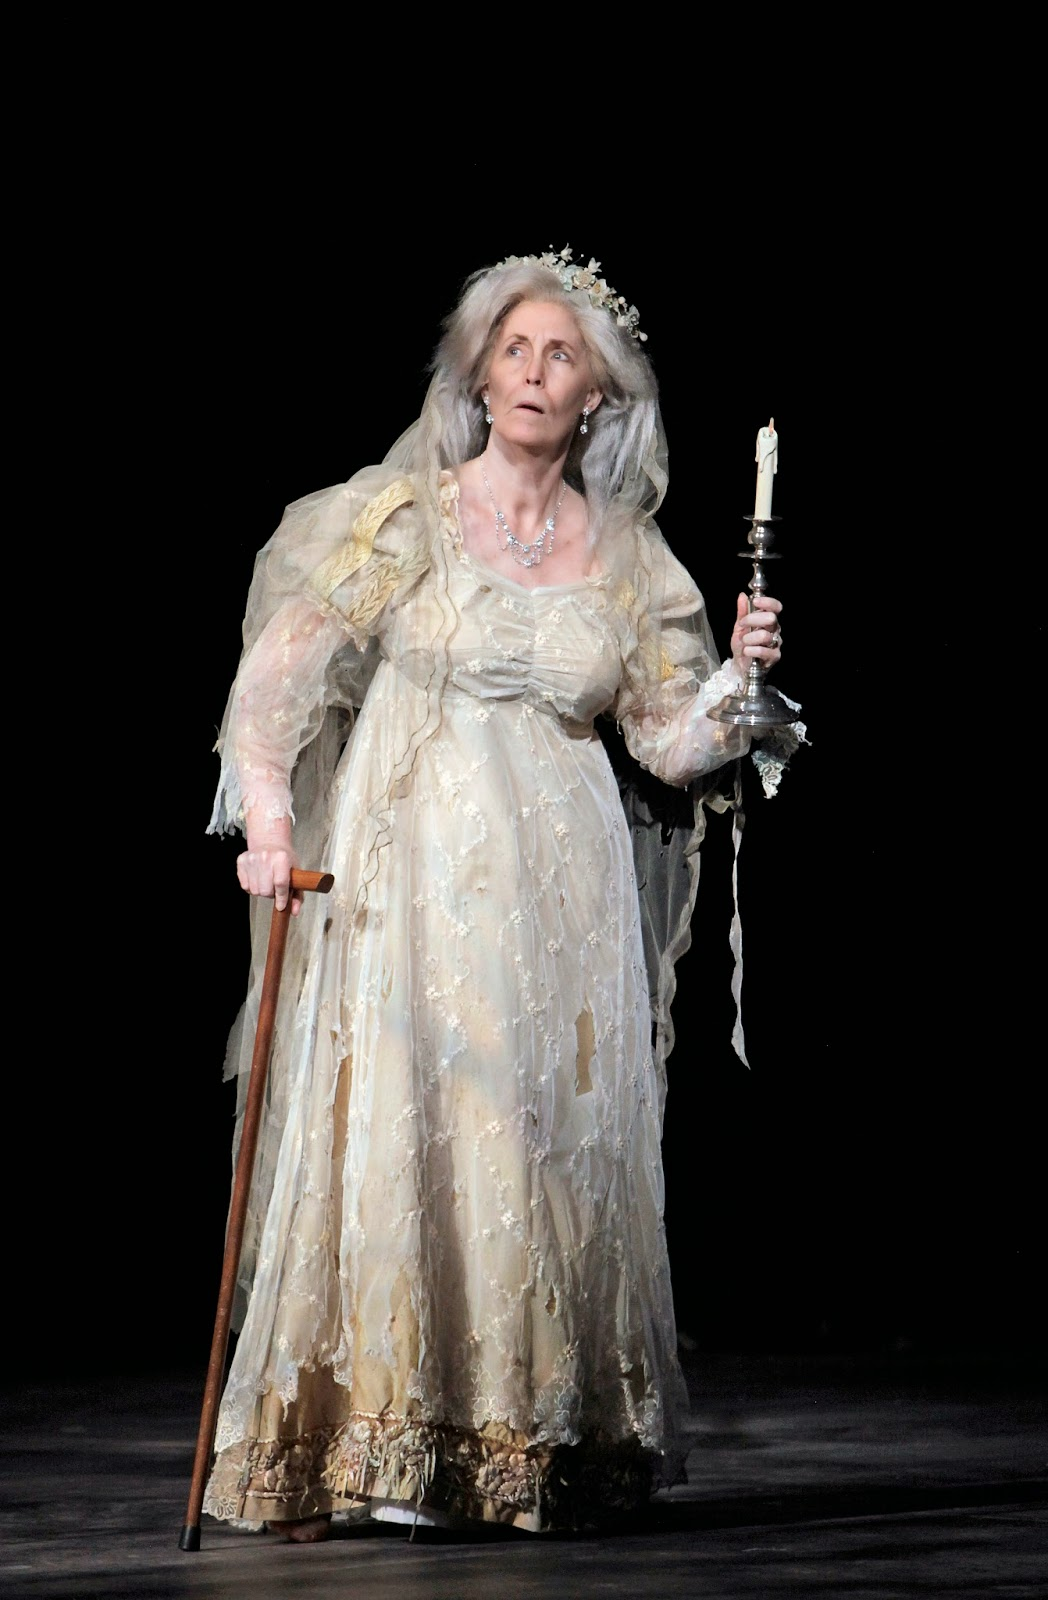 Gothic Horror: Portrayals of the Character of Miss Havisham